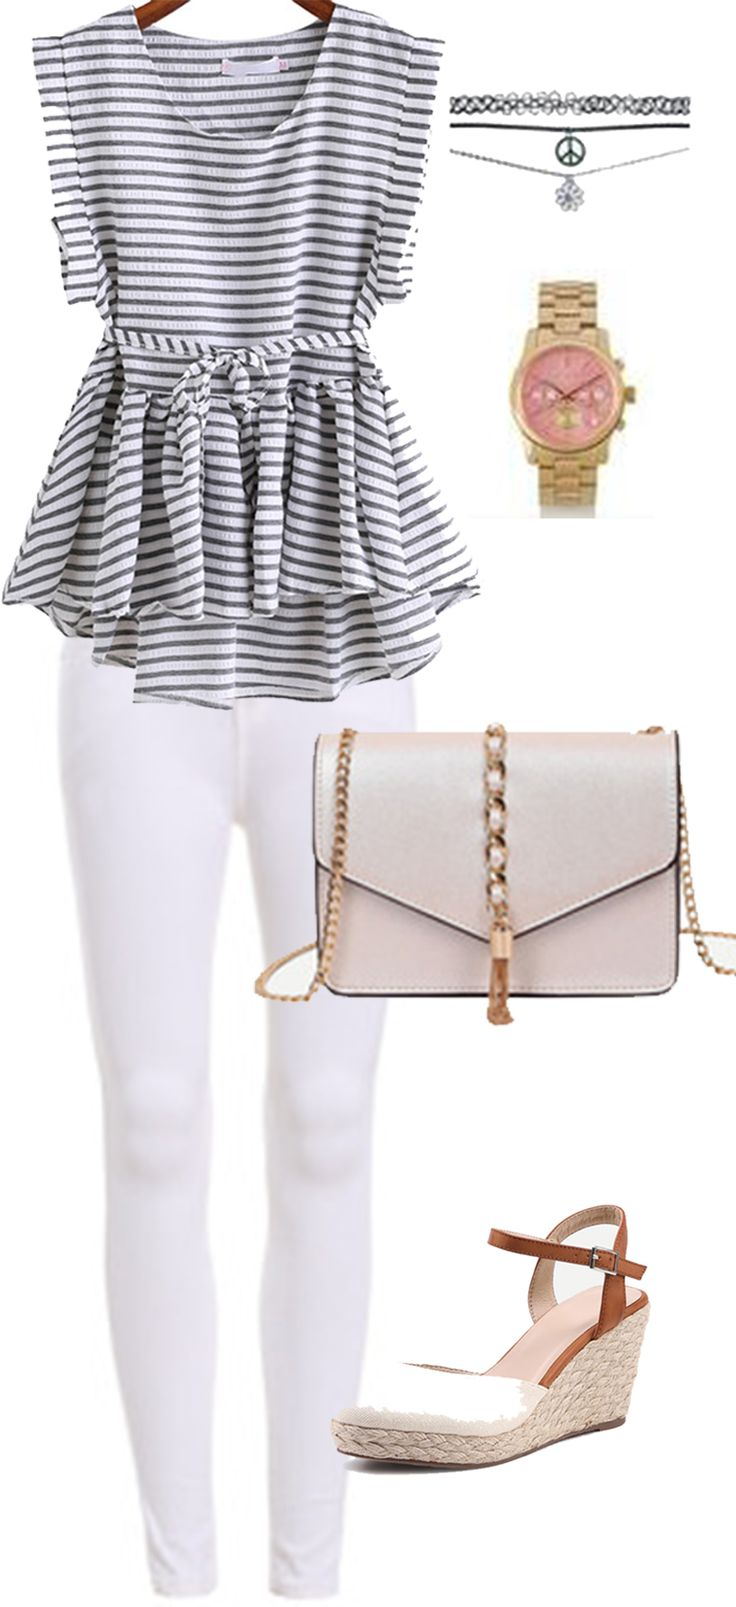 Business casual chic outfit-Cute stripe blouse+chic white jeans+ comfortable wedge heels+ adorable beige bag. Perfect for the whole day! Check them here now!